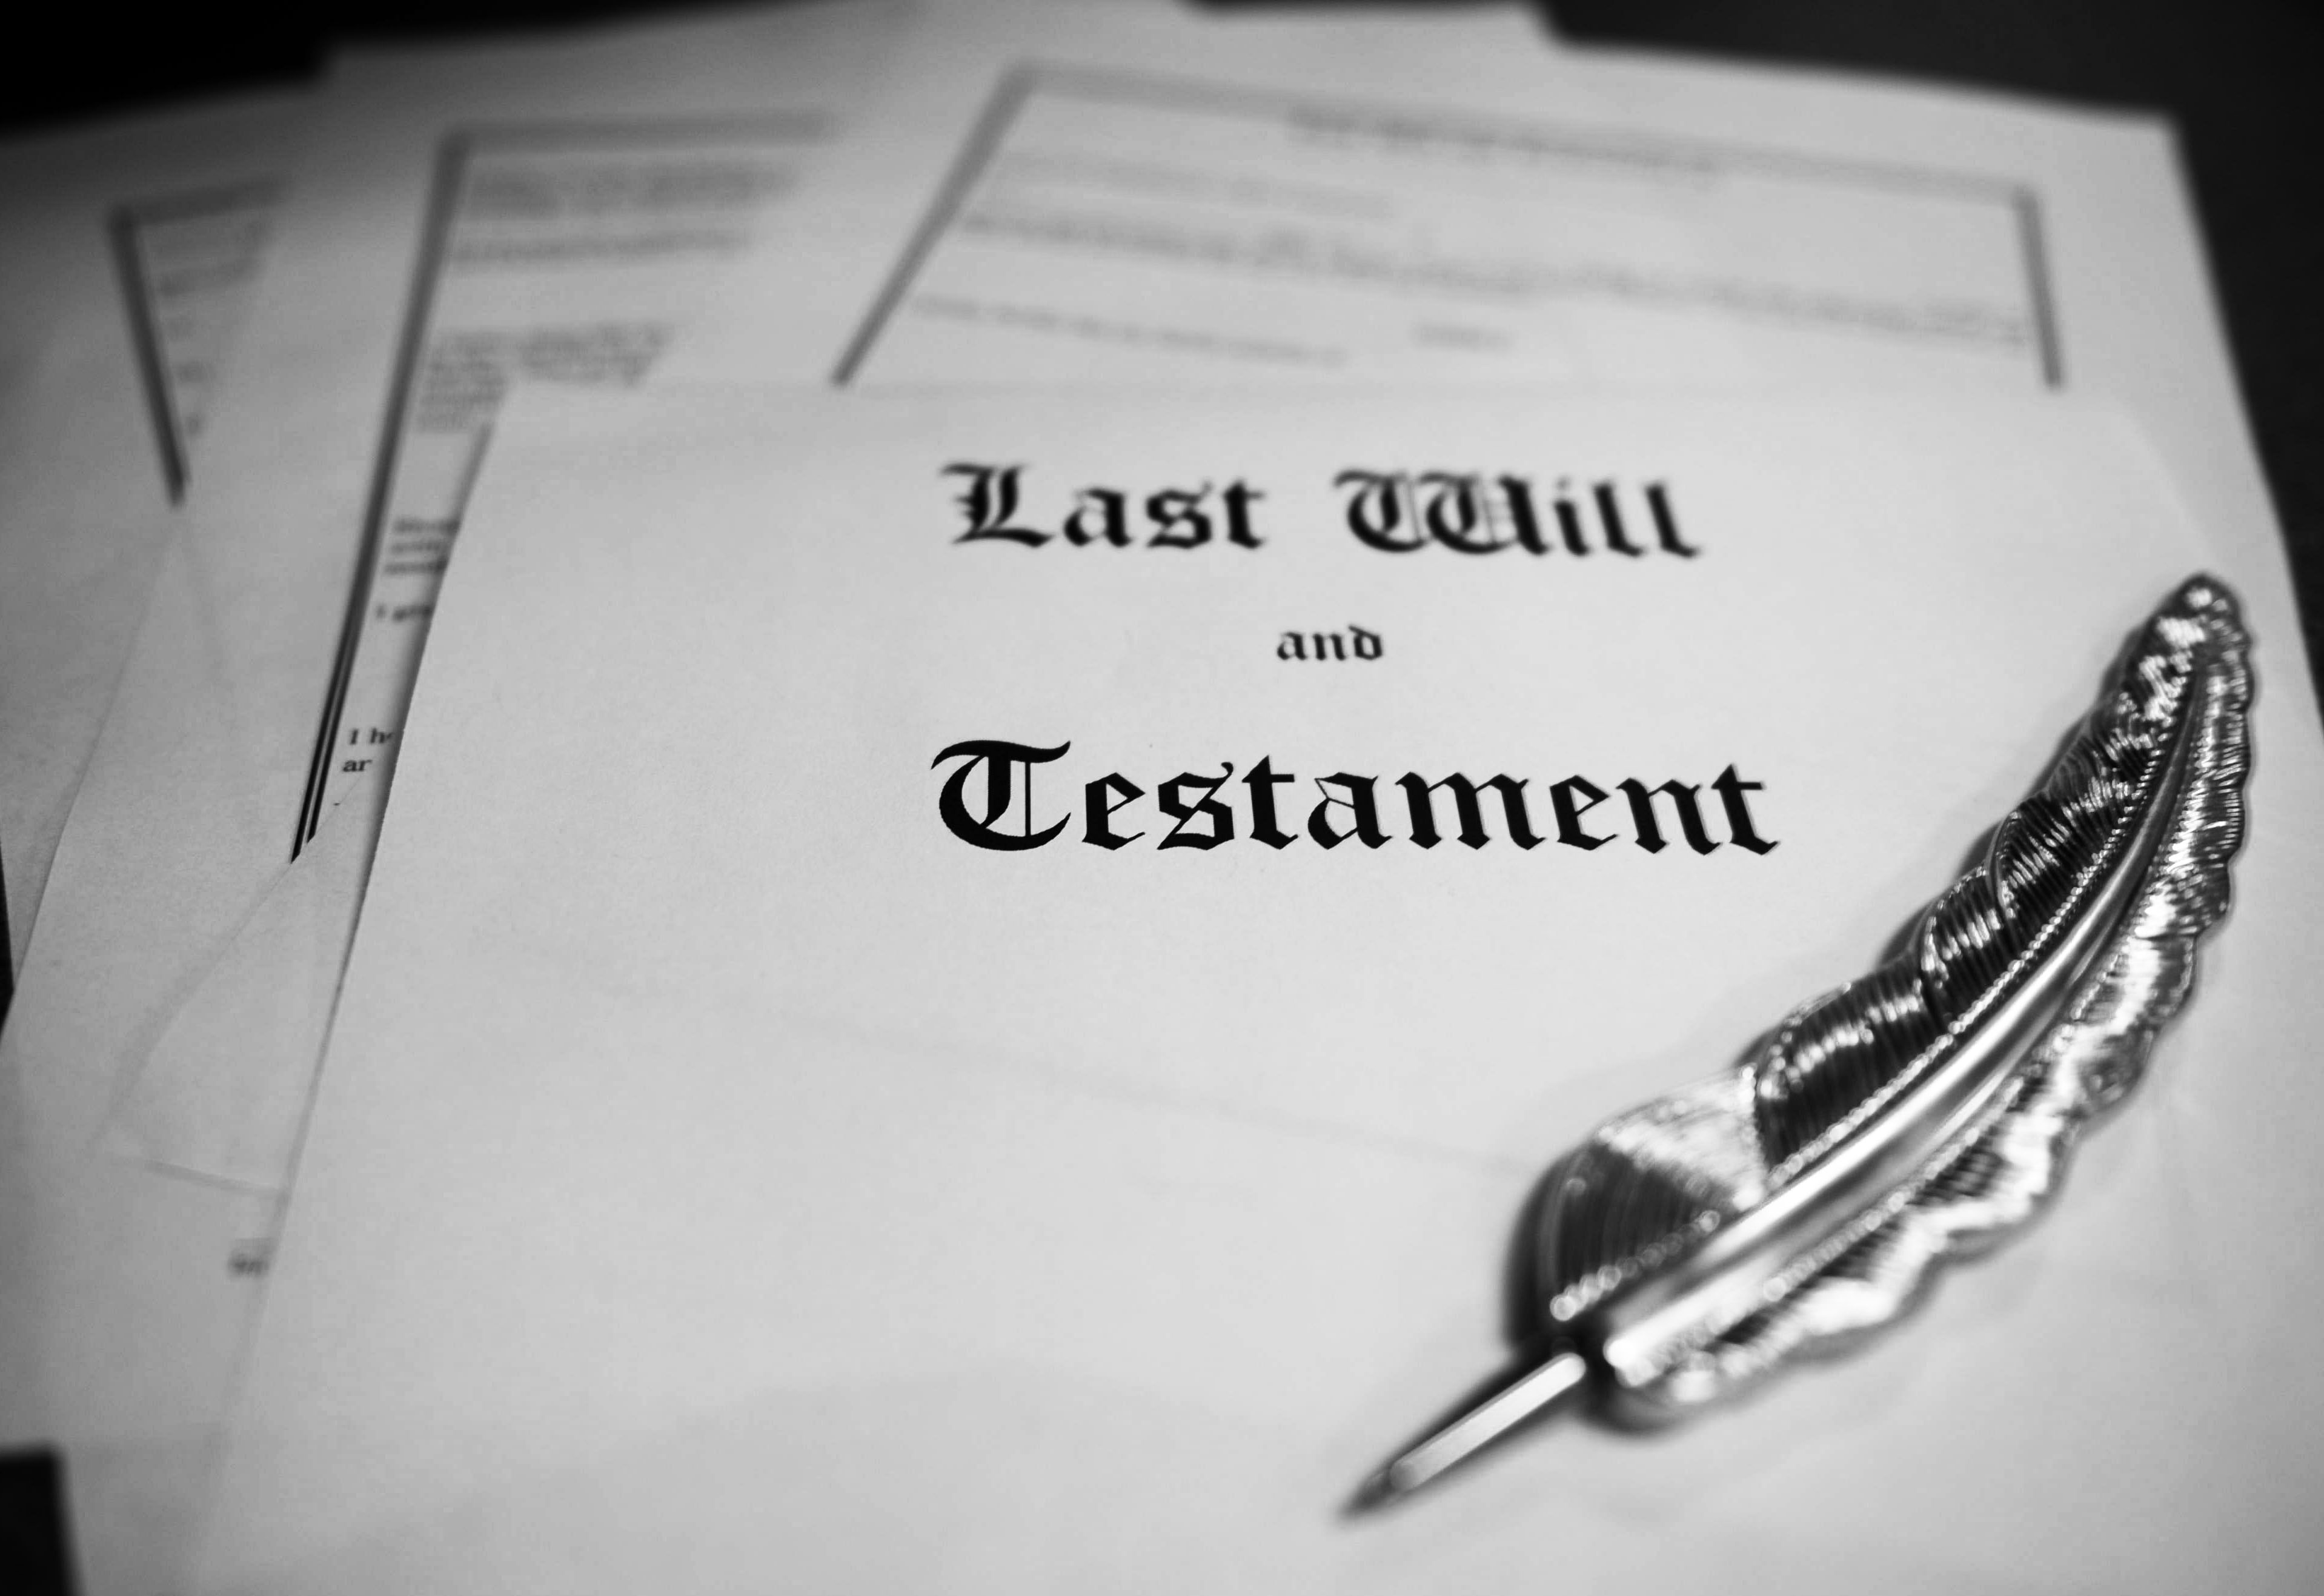 A recent survey found more than half of Southern Baptist pastors, overall, do not have a will, trust, living will, electronic will, legacy story or durable power of attorney with health care directives